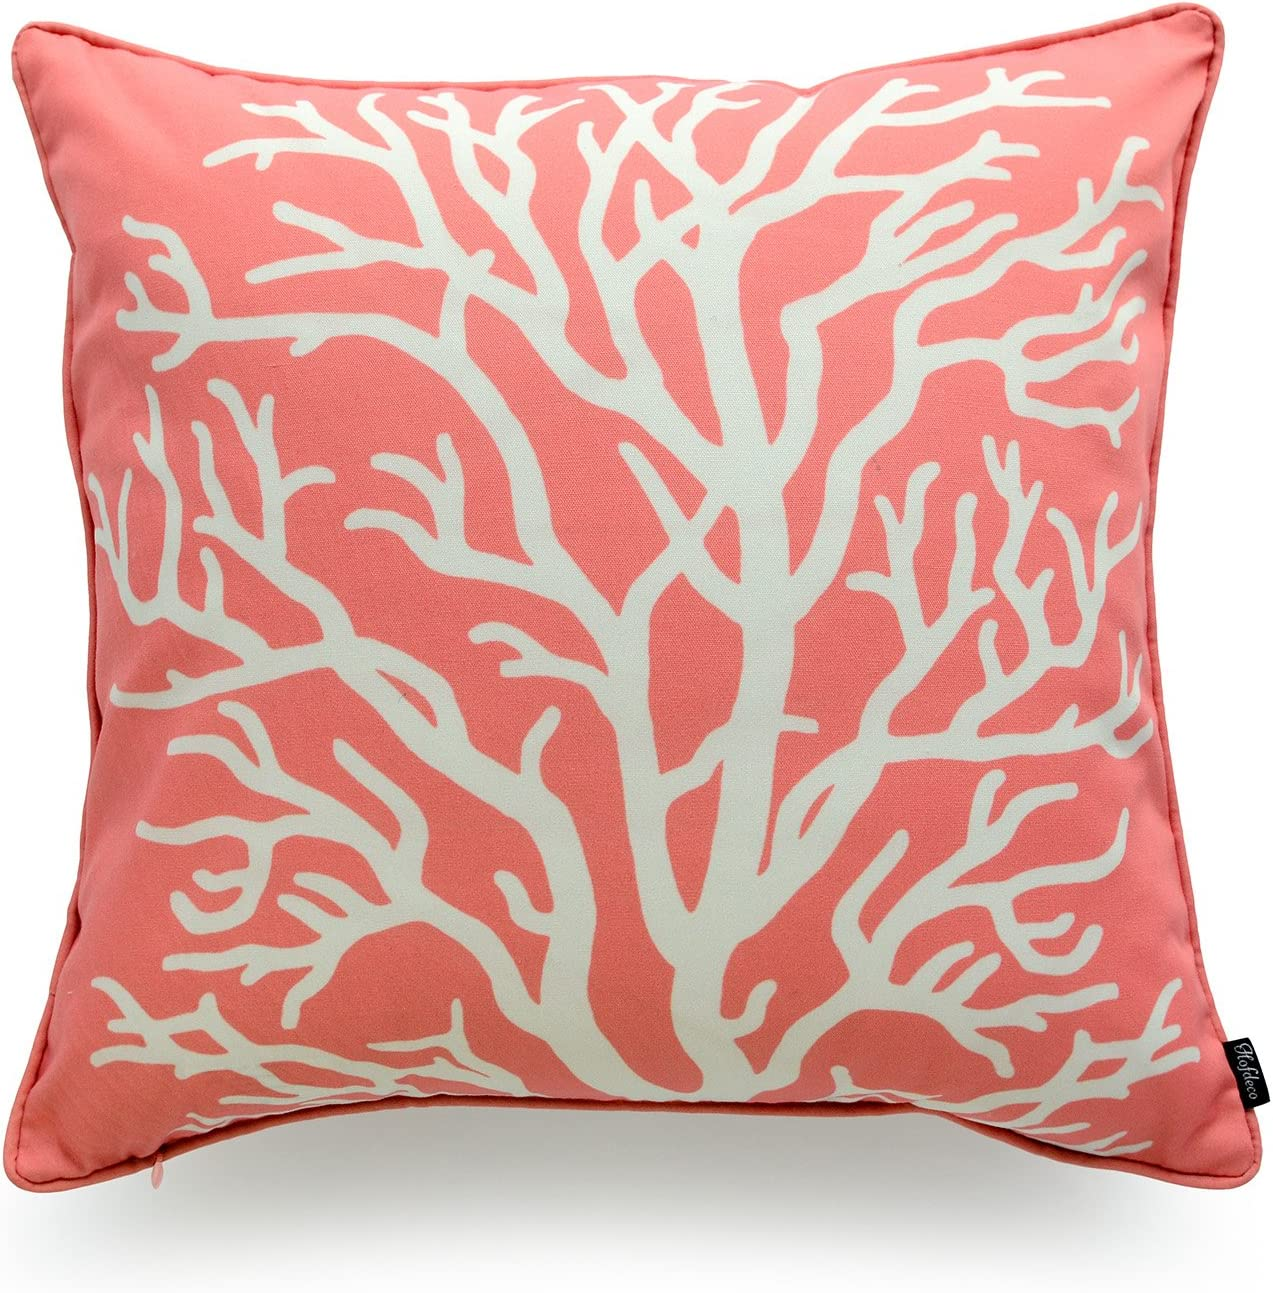 Hofdeco Beach Indoor Outdoor Pillow Cover ONLY, Water Resistant for Patio Lounge Sofa, Coral Pink Living Coral, 18